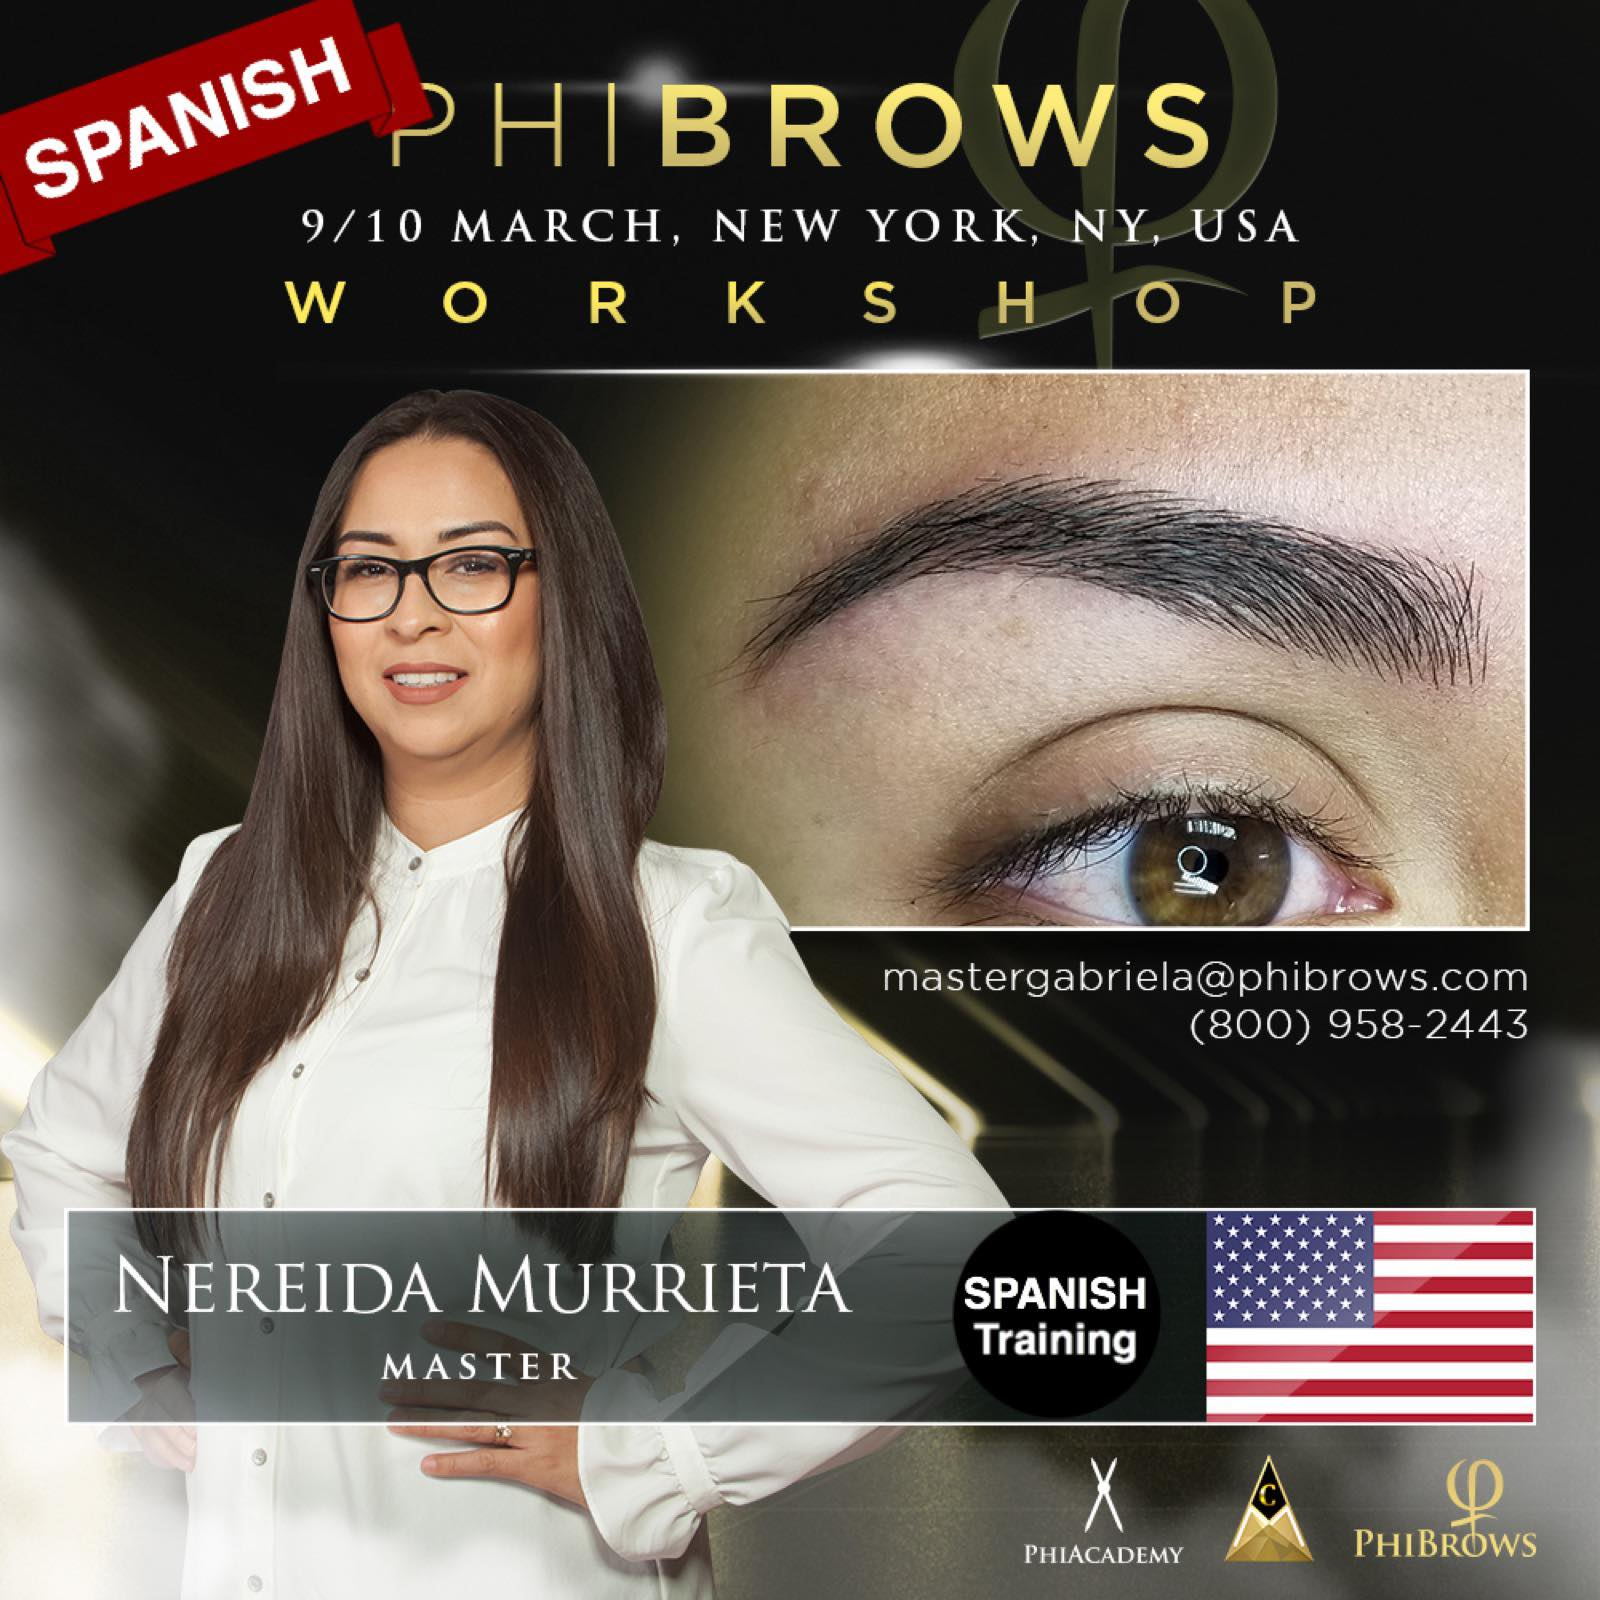 20-03-09 Phibrows Microblading Training Brooklyn, NY – March 09/10